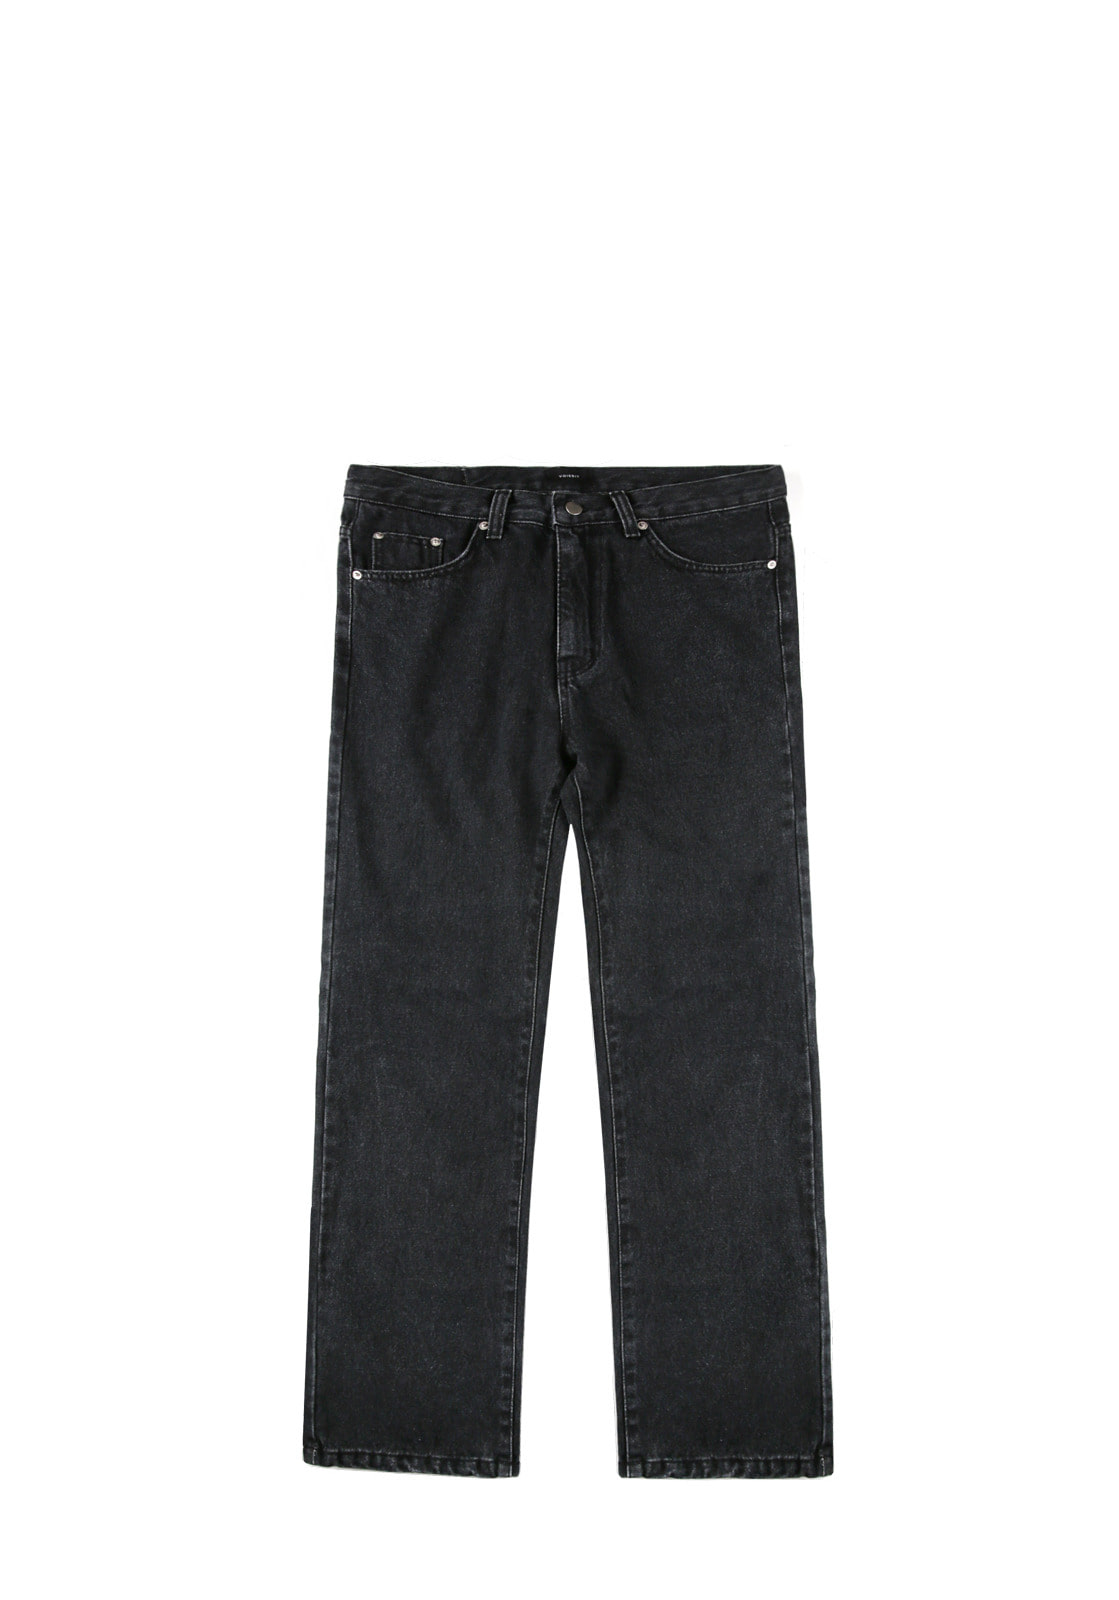 V232 NONE SPAN WIDE DENIM PANTS  BLACK